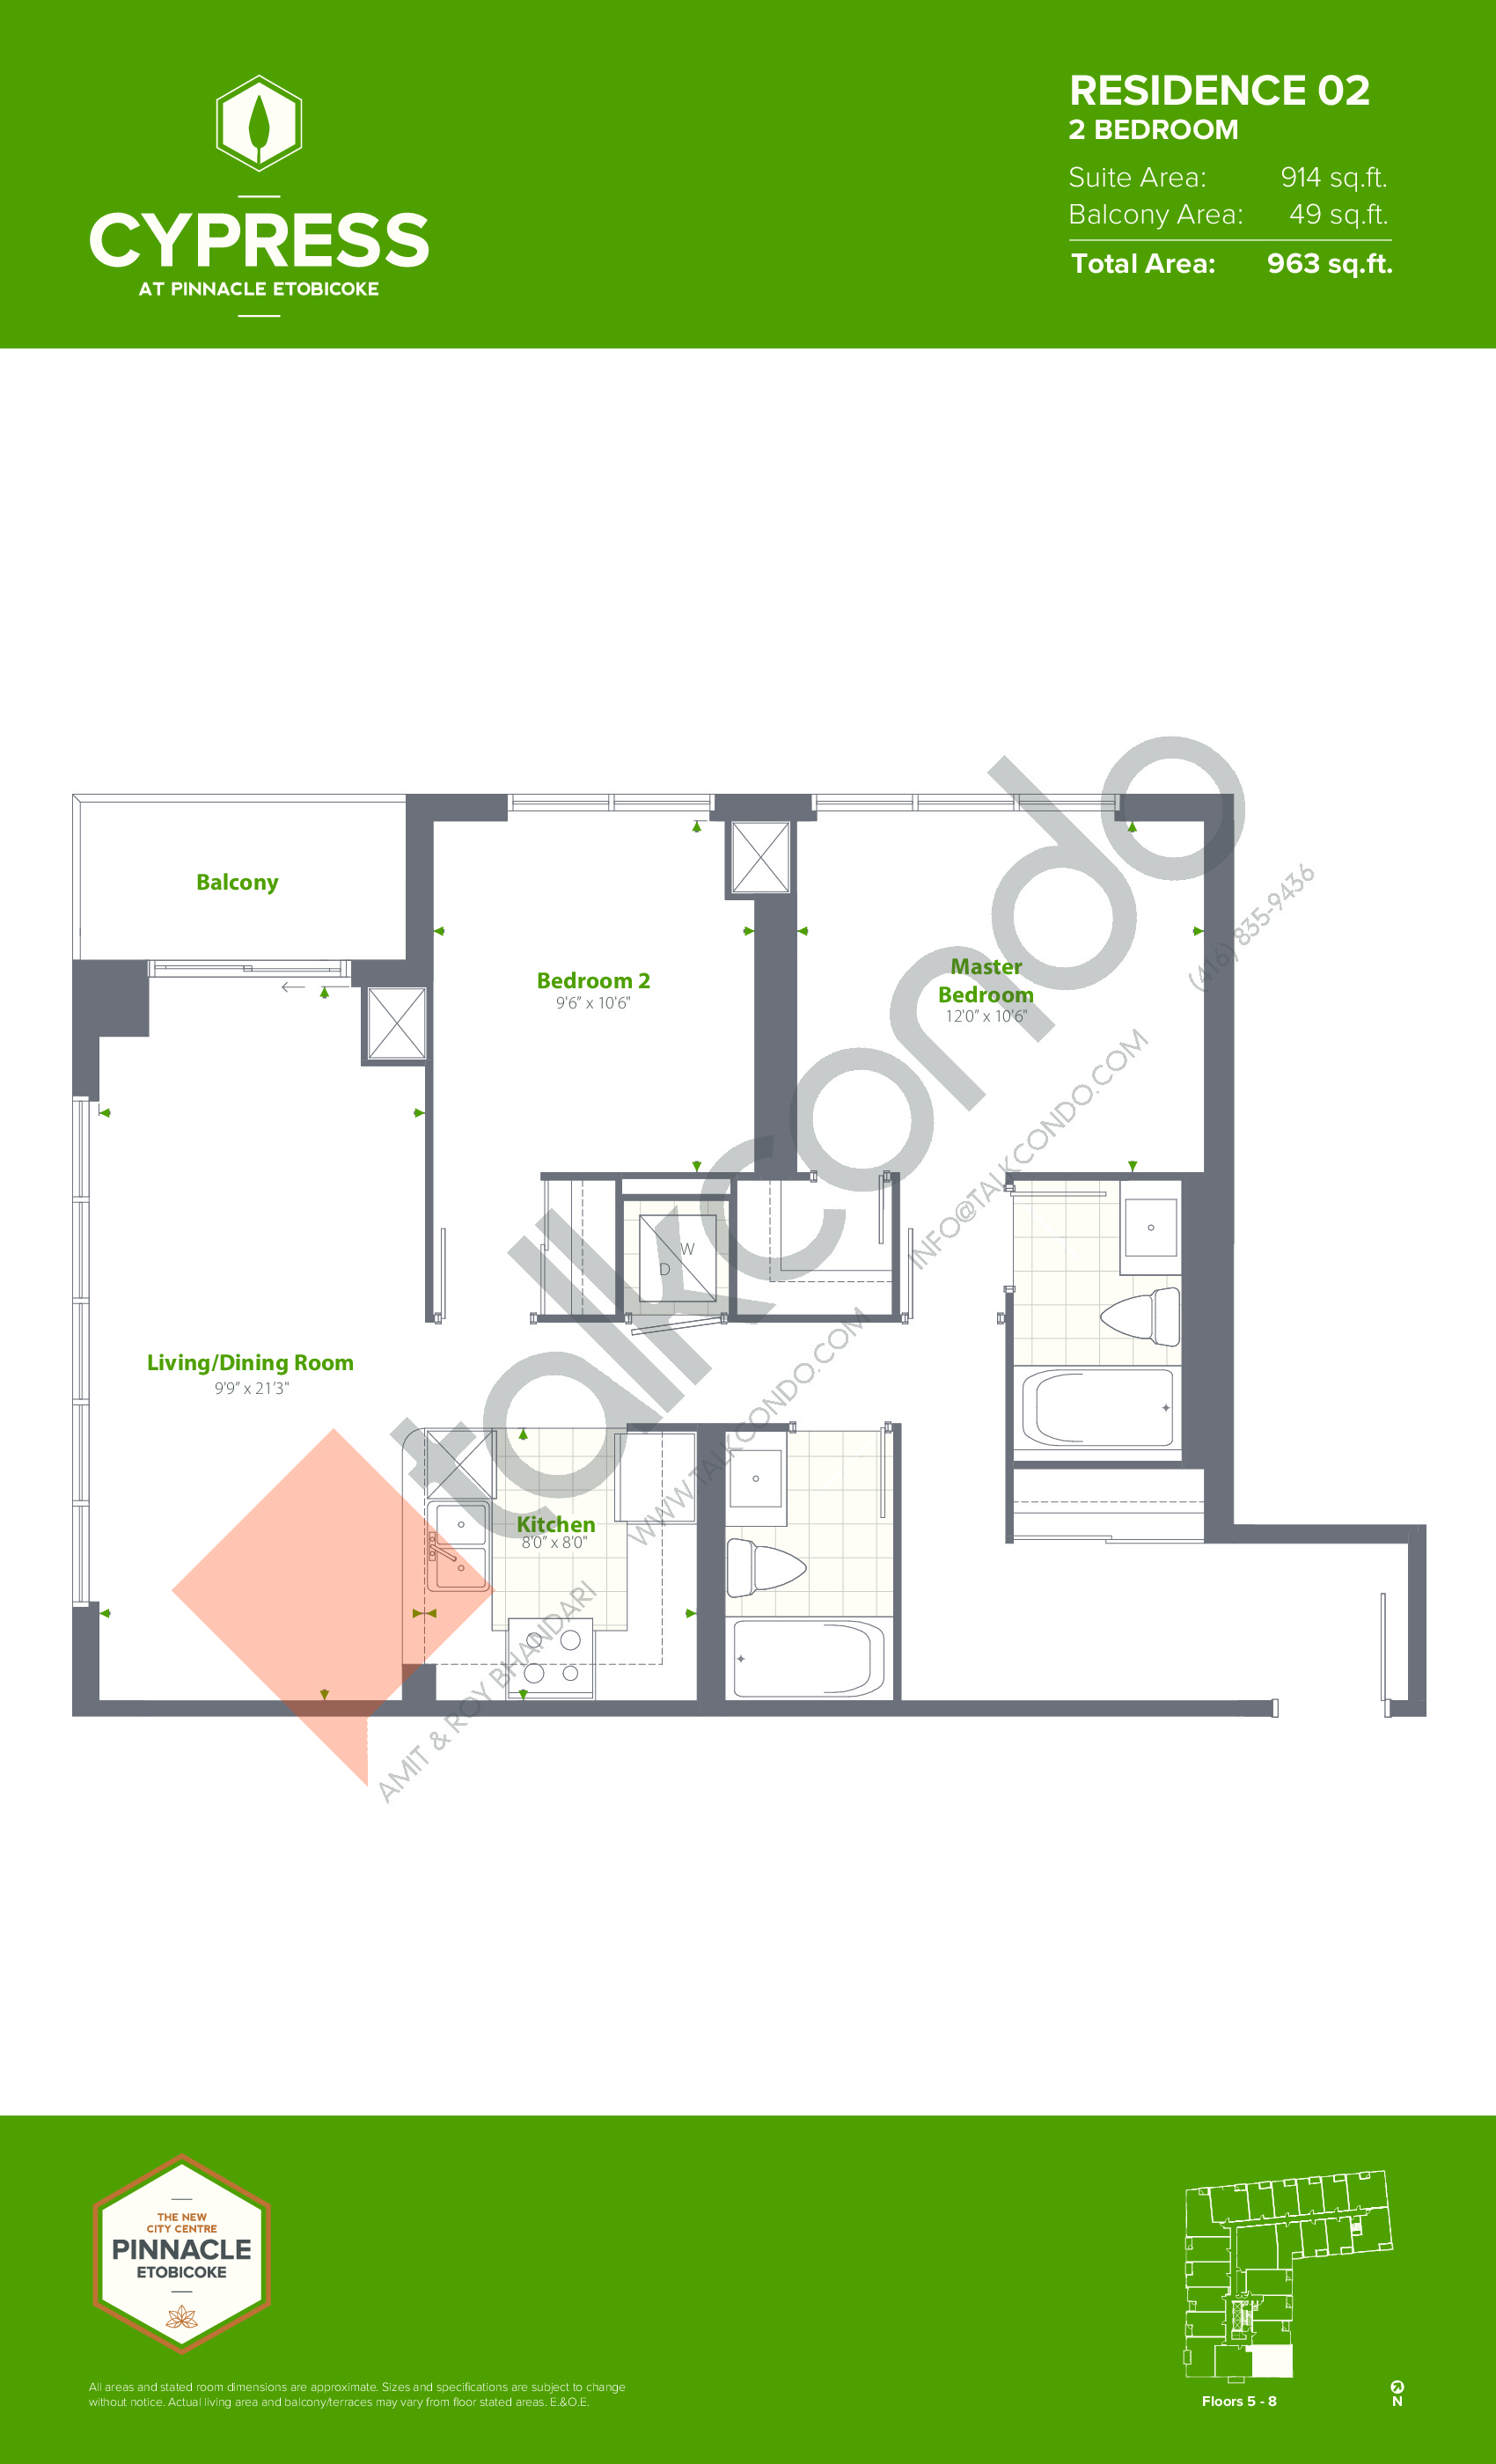 Residence 02 (Podium) Floor Plan at Cypress at Pinnacle Etobicoke - 914 sq.ft